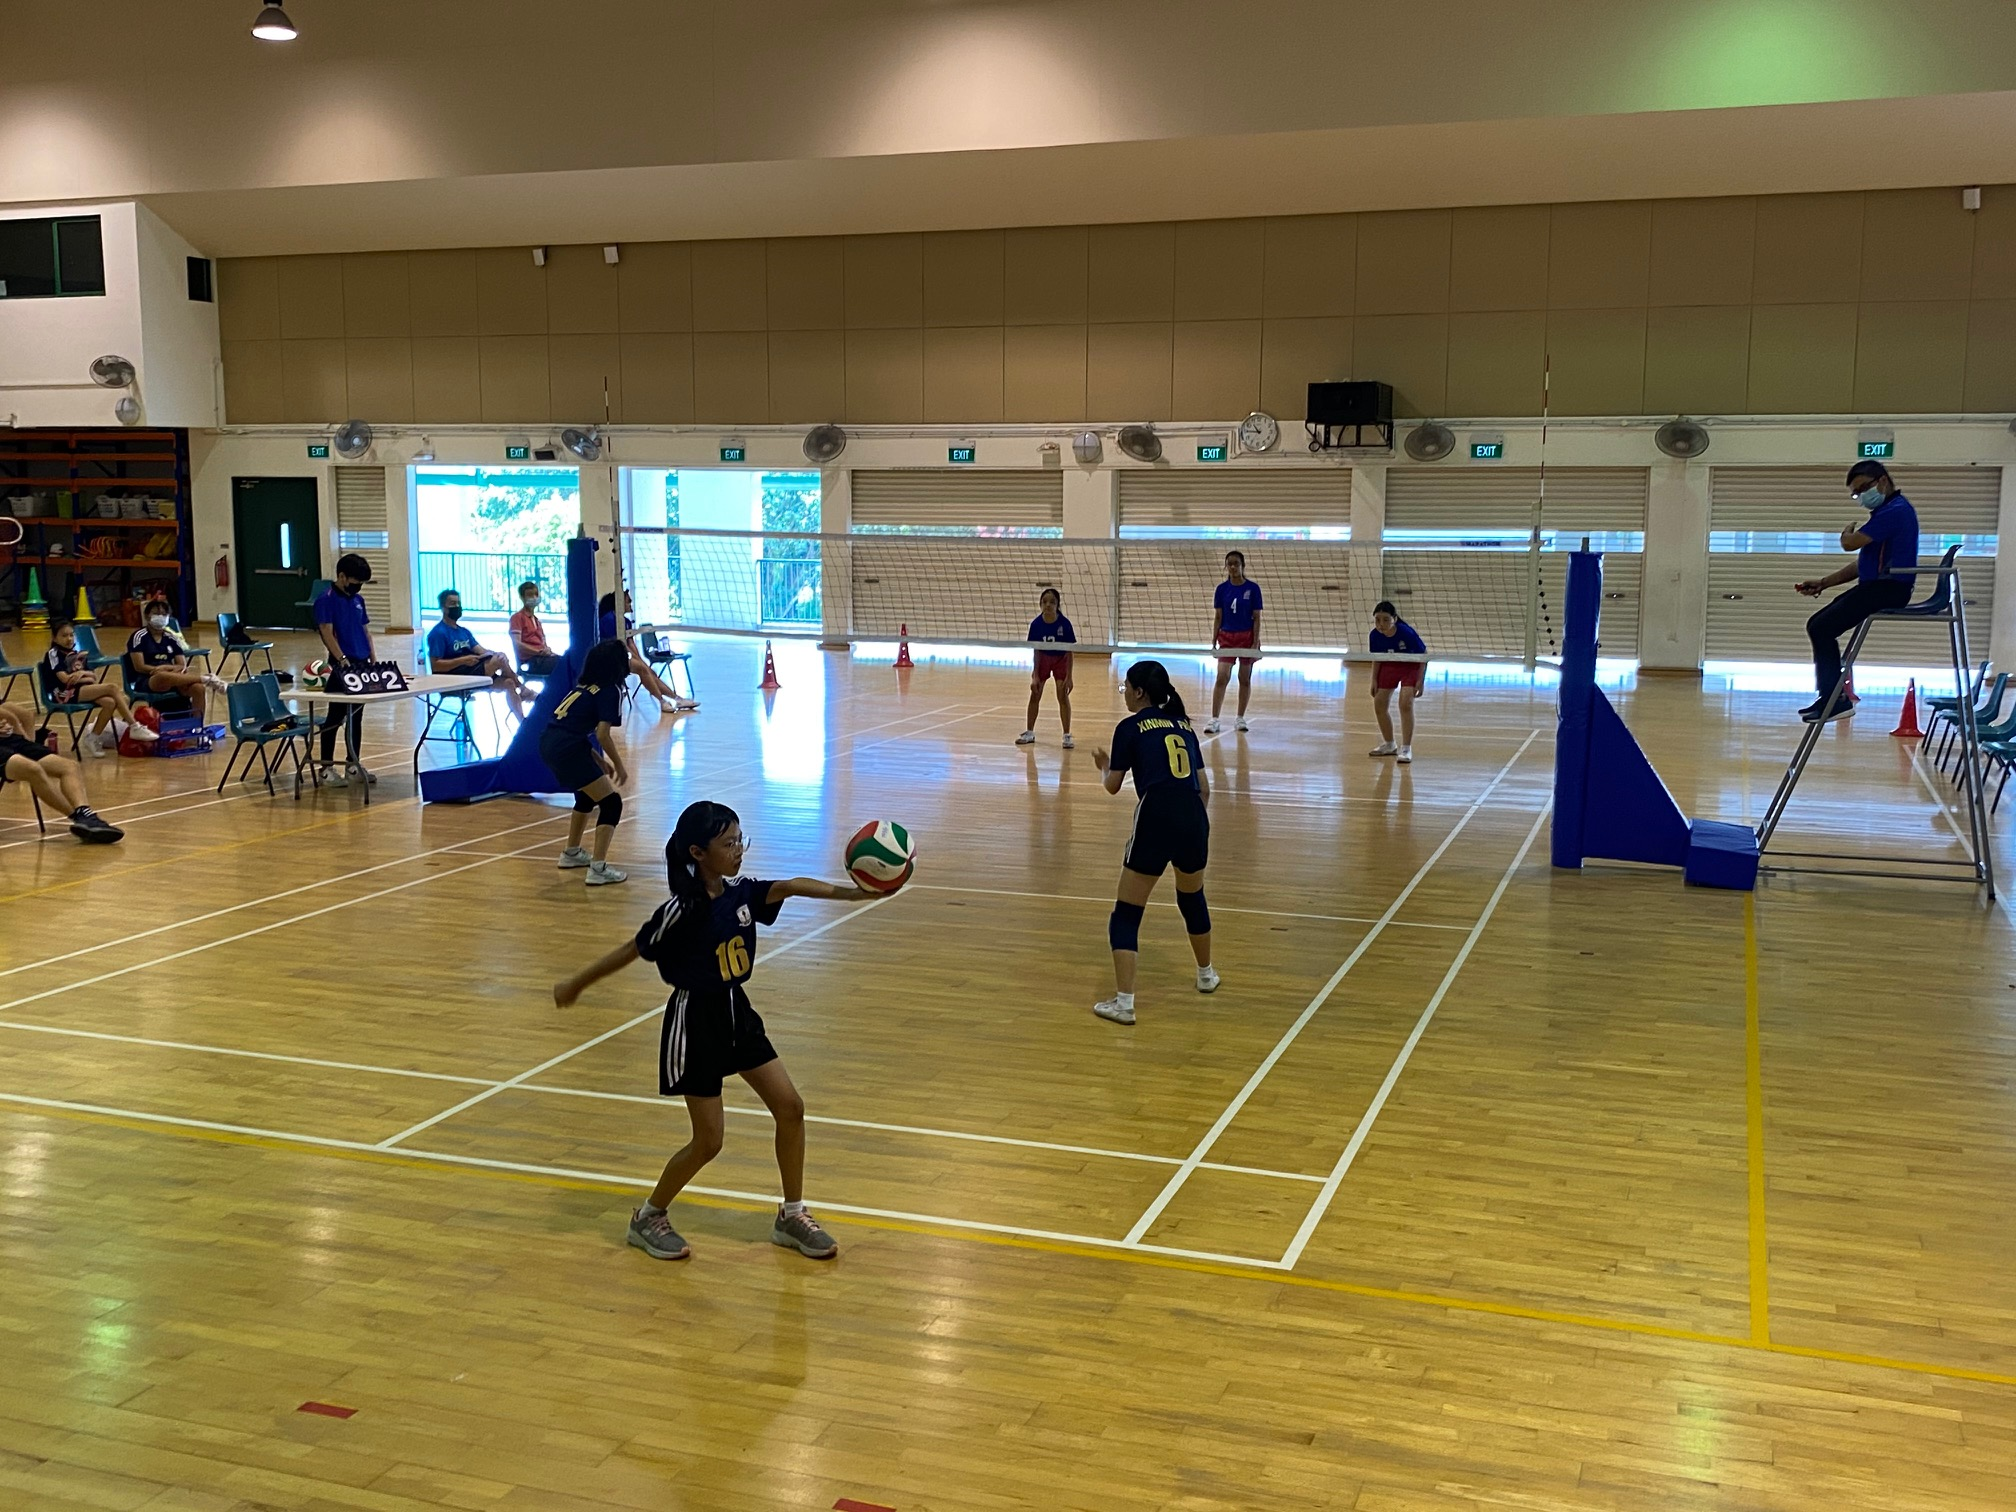 Yuhua Primary (blue) vs Xinmin Primary (black) at the National School Games Senior Division girls volleyball preliminary stage